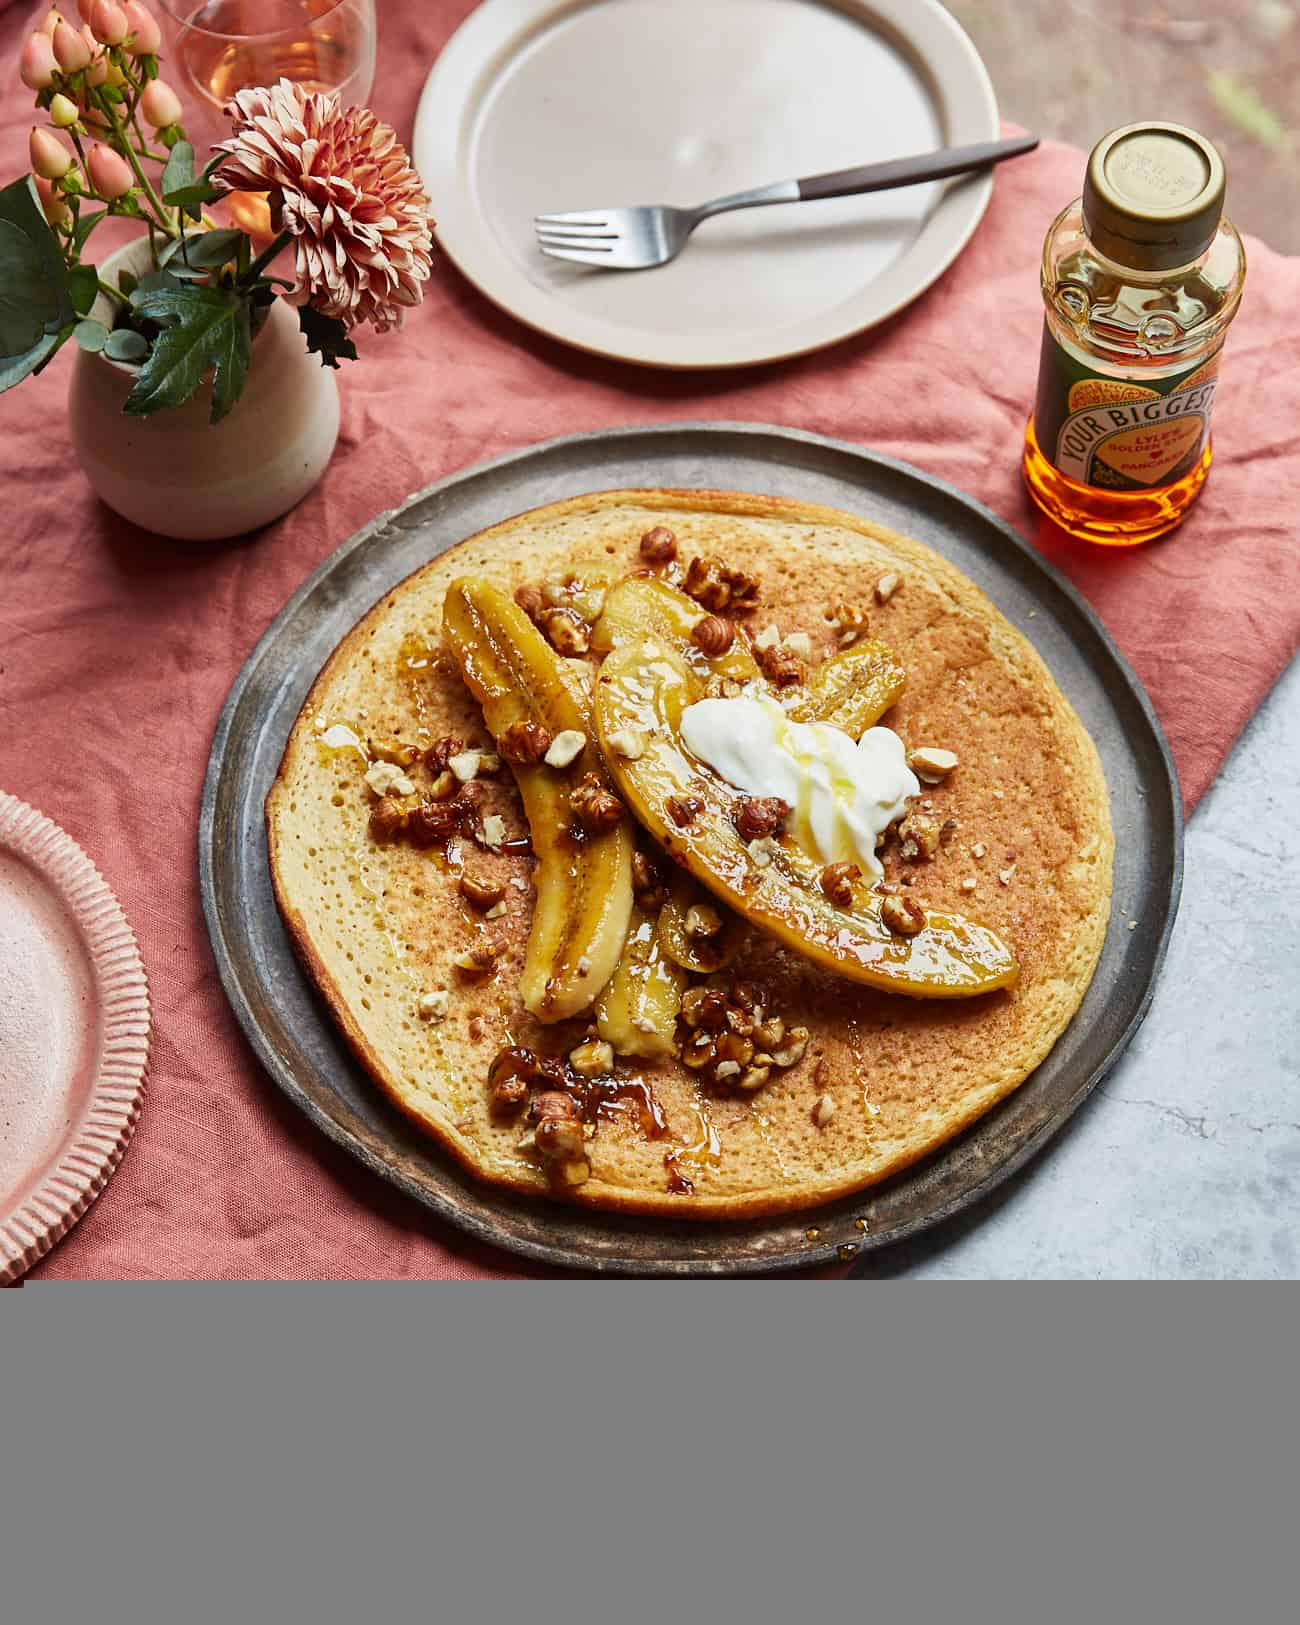 a large sharing pancake topped with caramelised bananas and yoghurt on a table setting with flowers